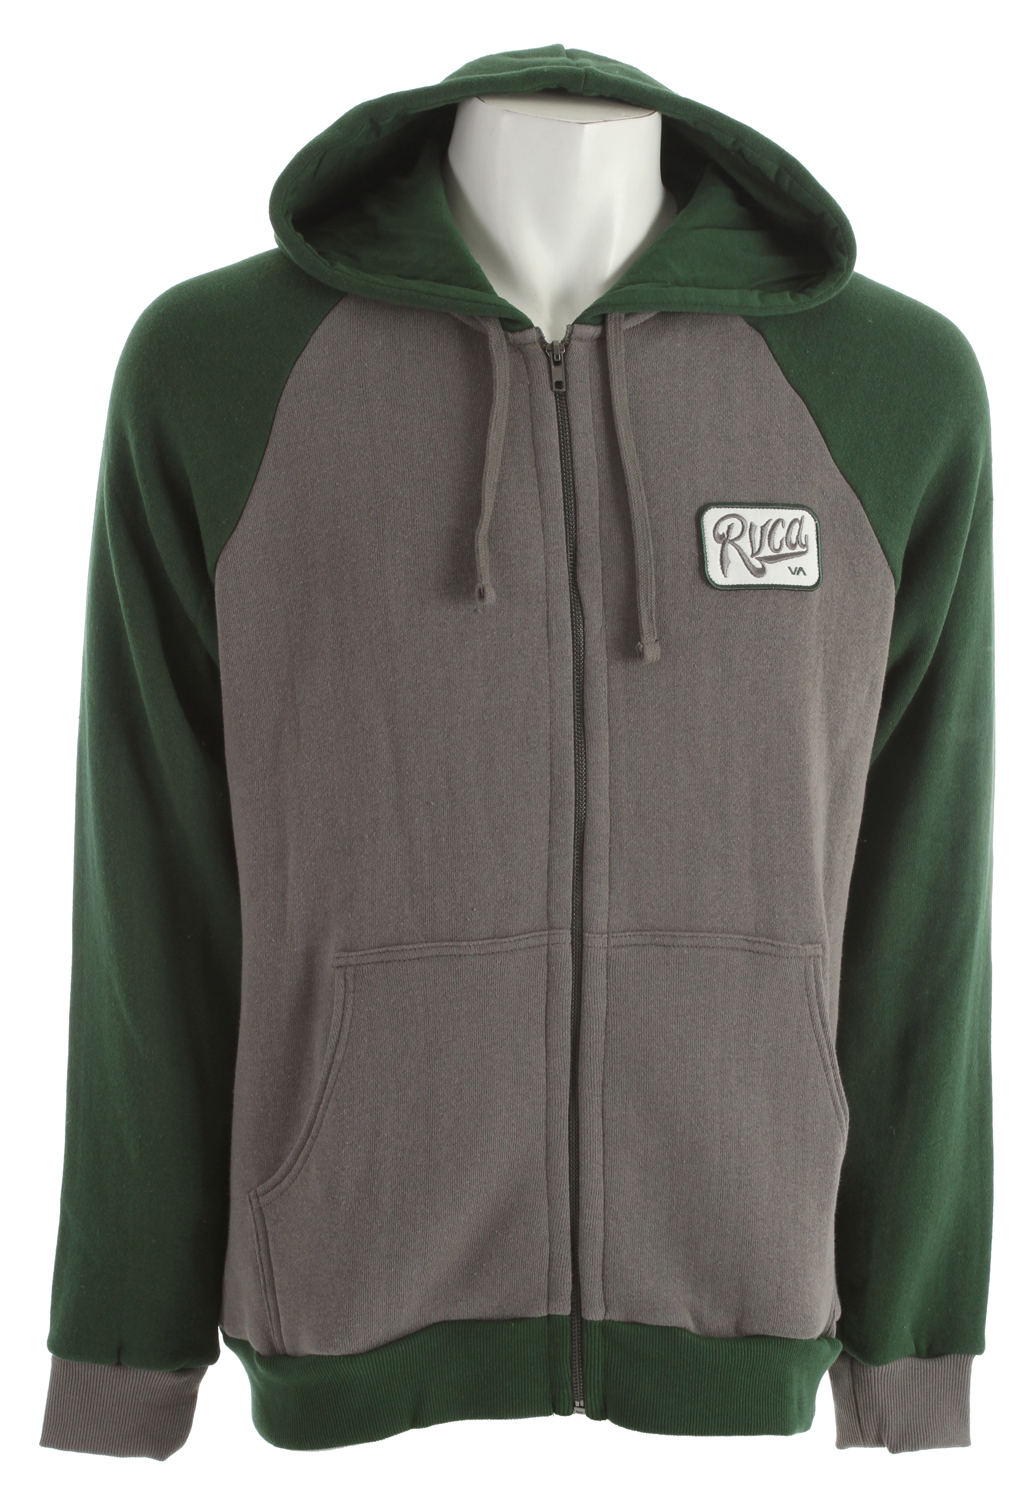 Key Features of the RVCA Overtime Hoodie: Regular fit 65% cotton/35% polyester nubby fleece Long sleeve hood with exposed center front zip closure Drawcord at hood opening Patch pocket at lower front Ribbing at cuffs and waistband RVCA patch at wearers left chest - $42.95